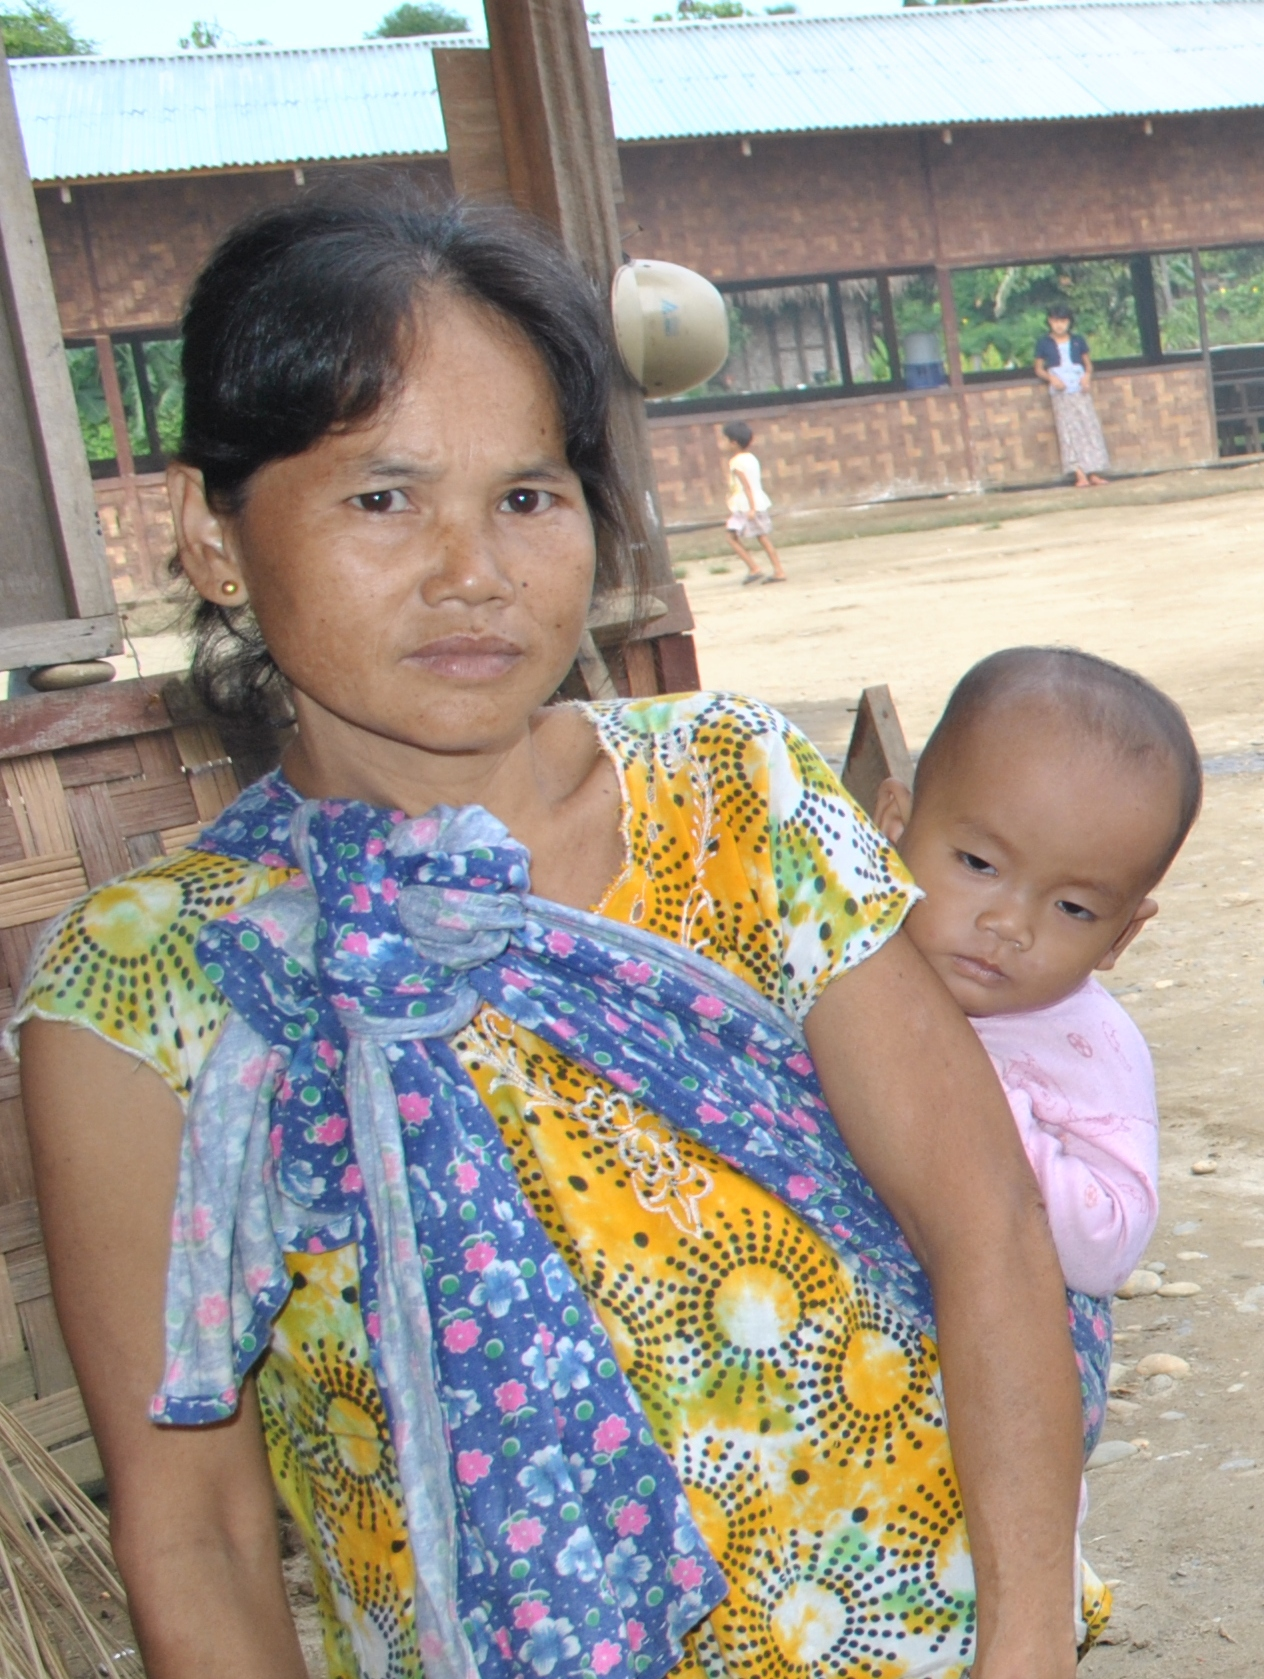 Zing Htung Htu, Kachin IDP in November 2012